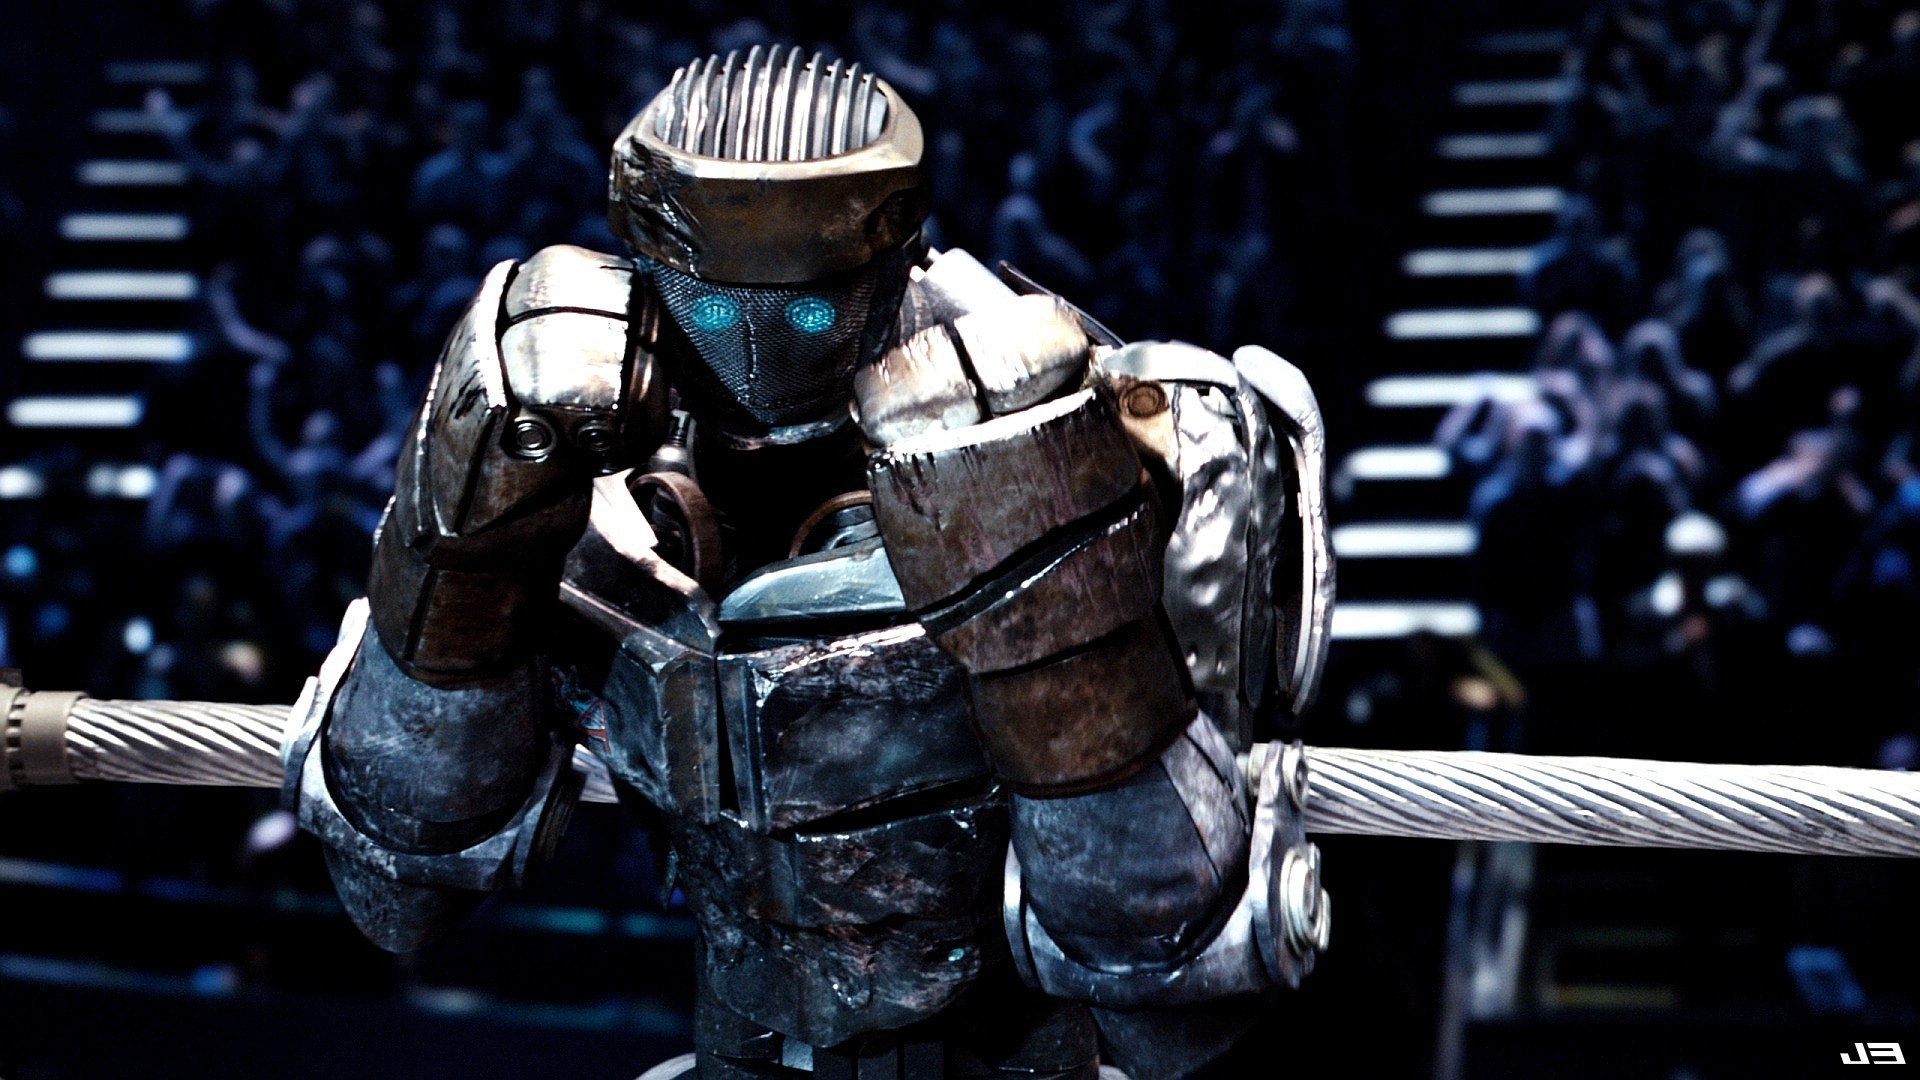 1920x1080 Real Steel Wallpaper